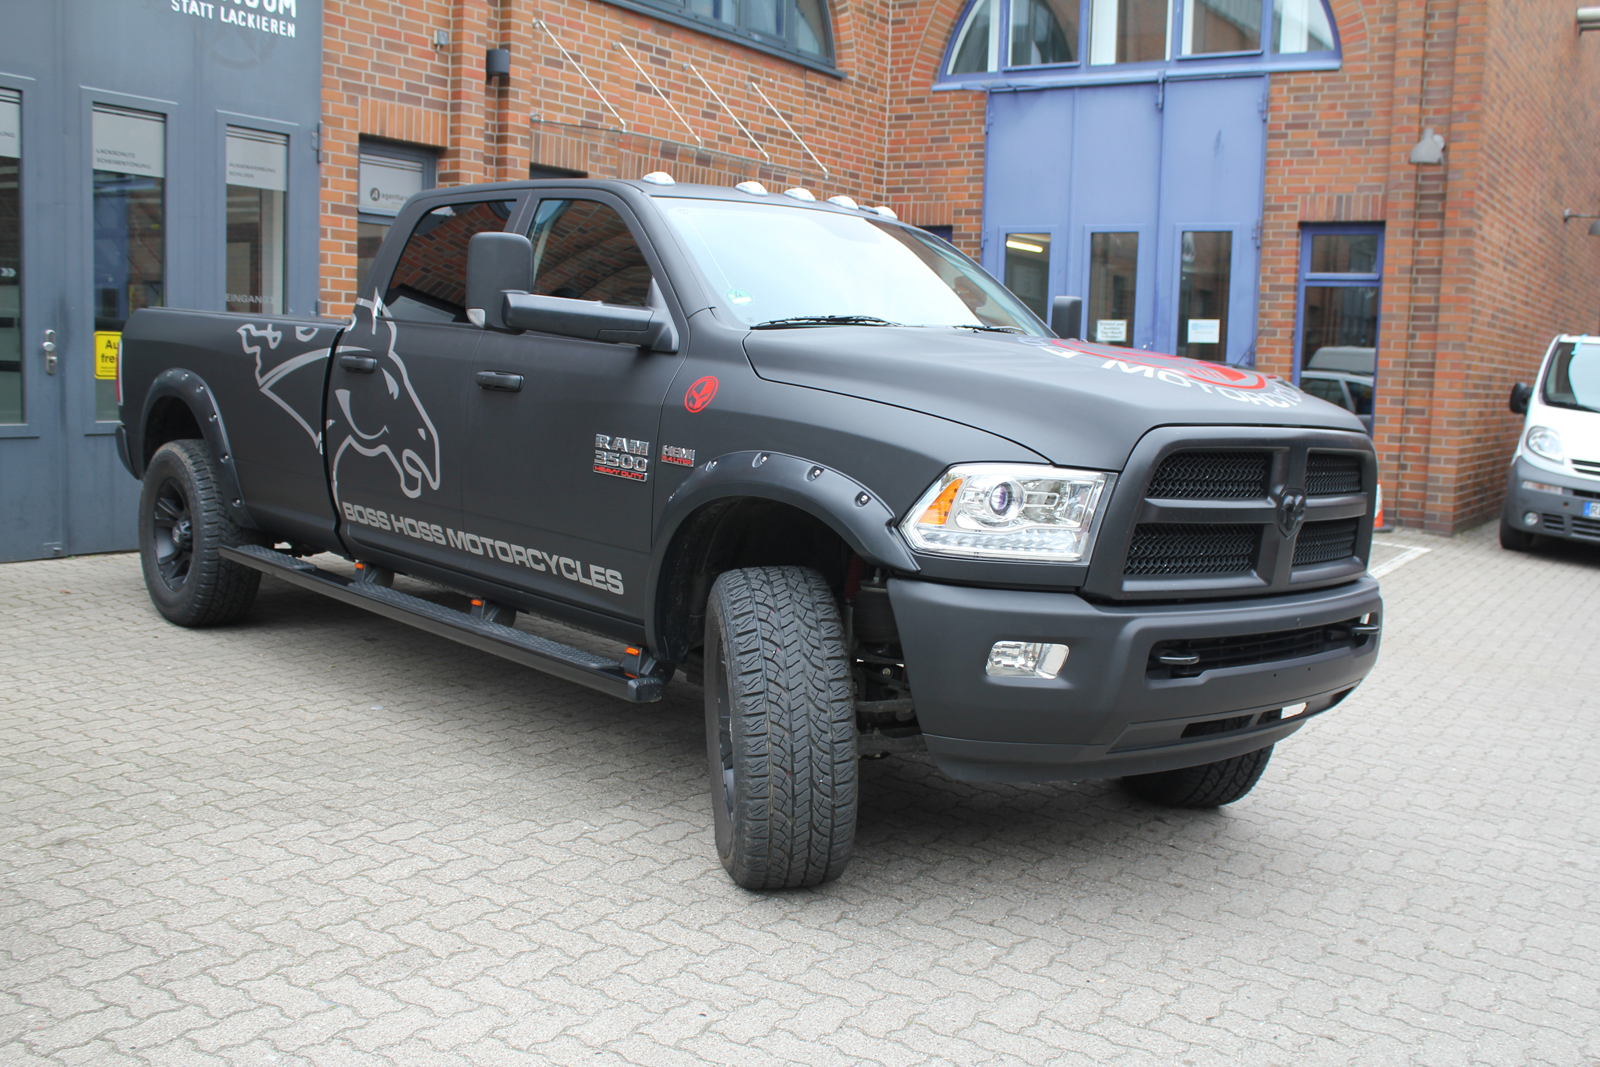 DODGE_RAM_CAR-WRAPPING_SCHWARZ_MATT_BOSS_HOSS_MOTORCYCLES_BRANDING_02